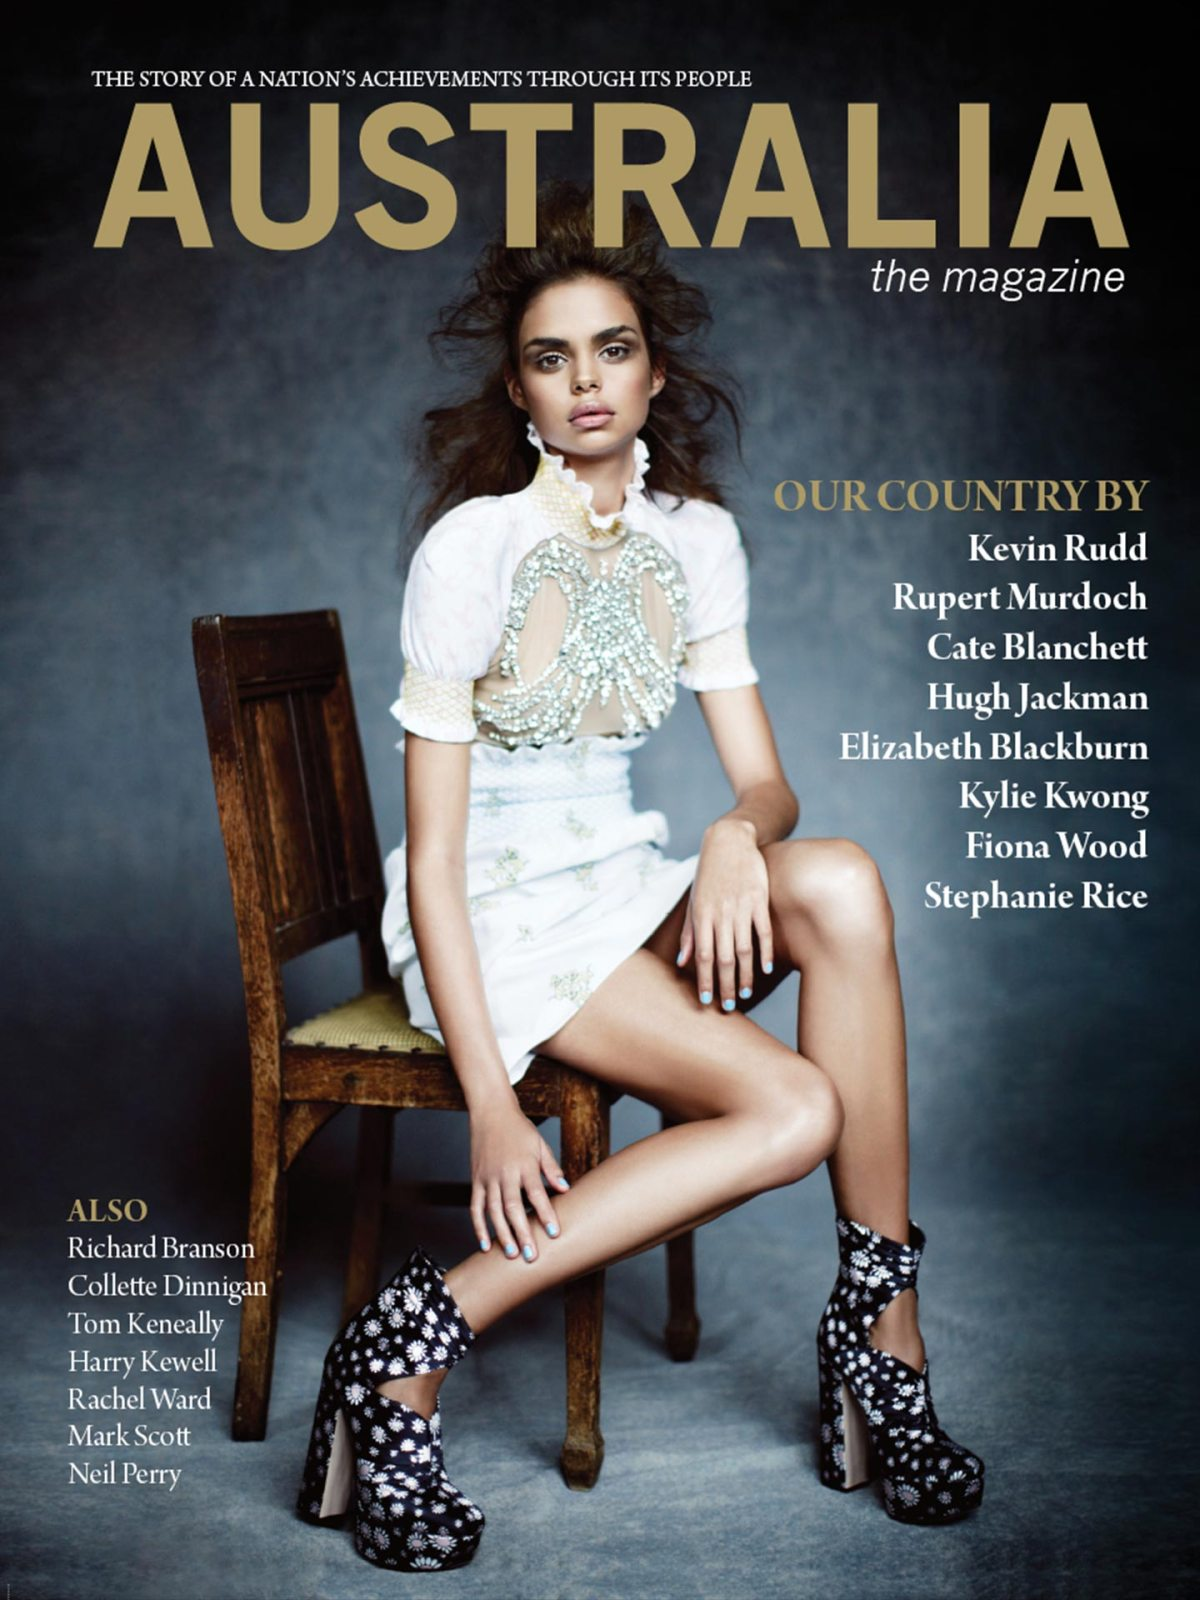 Australia The Magazine Australian Government